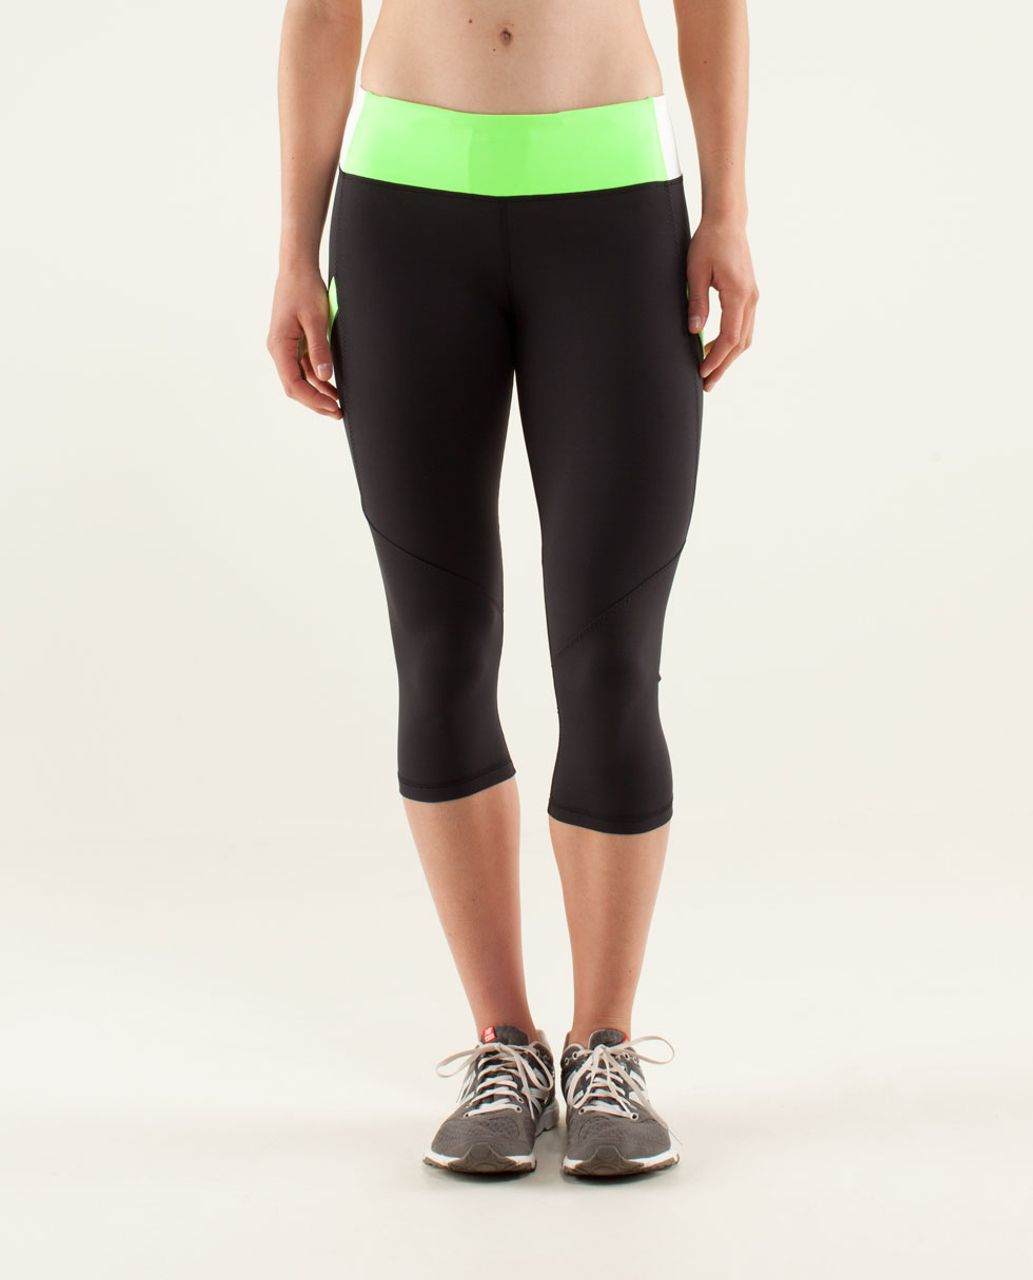 Lululemon Run:  Mod Moves Crop - Black / Zippy Green / White